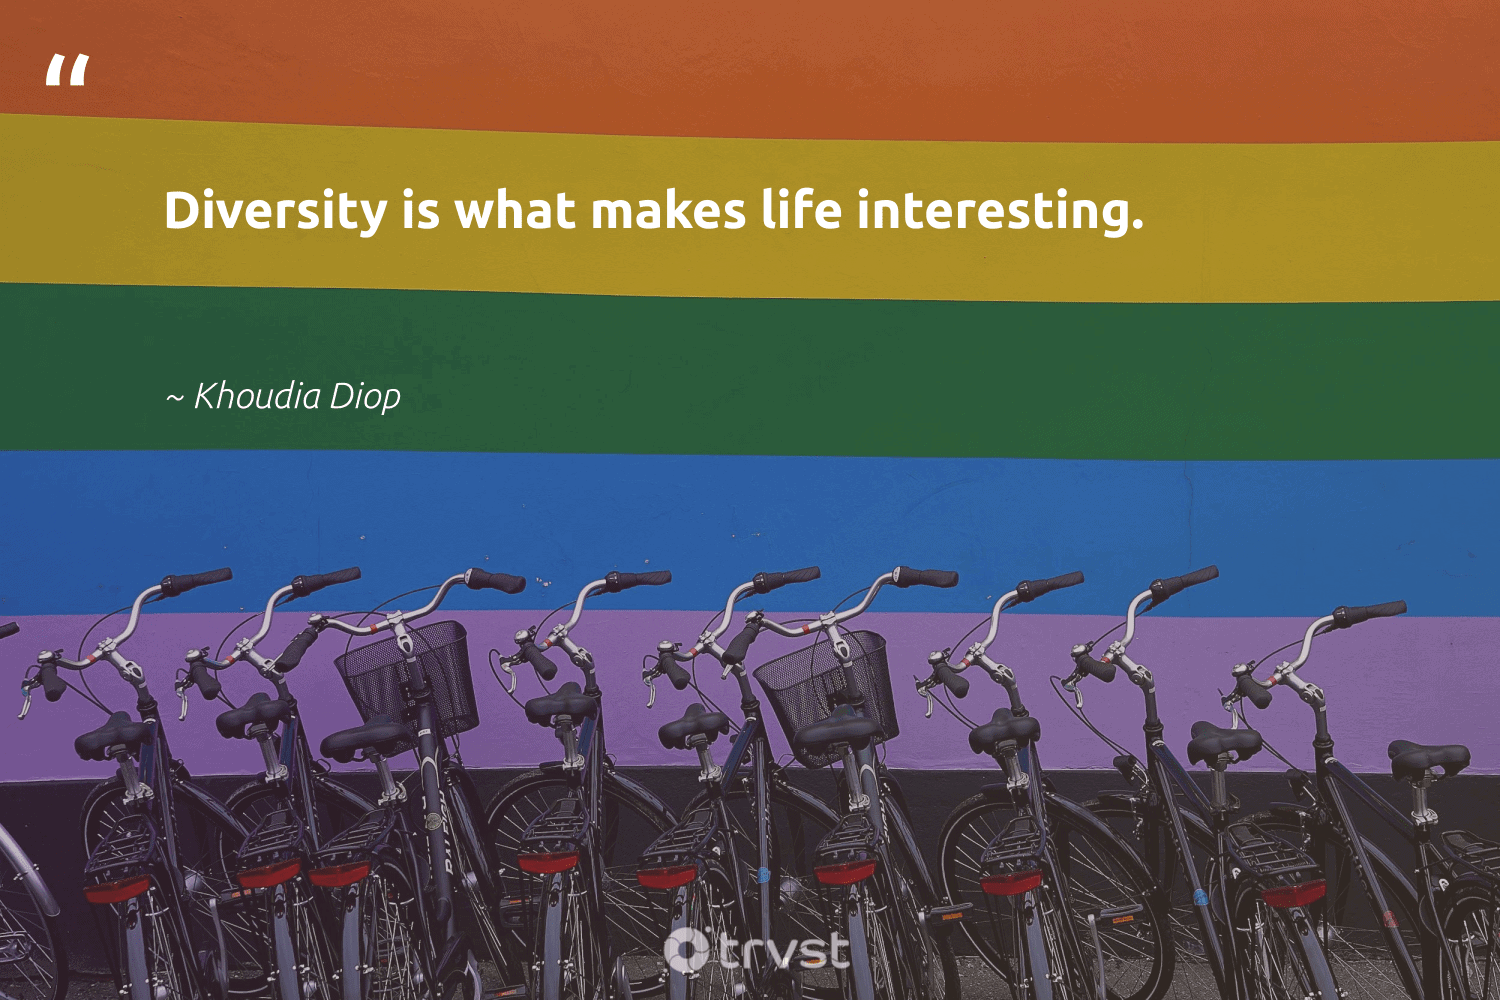 """""""Diversity is what makes life interesting.""""  - Khoudia Diop #trvst #quotes #diversity #discrimination #representationmatters #socialchange #bethechange #planetearthfirst #inclusion #weareallone #giveback #dotherightthing"""